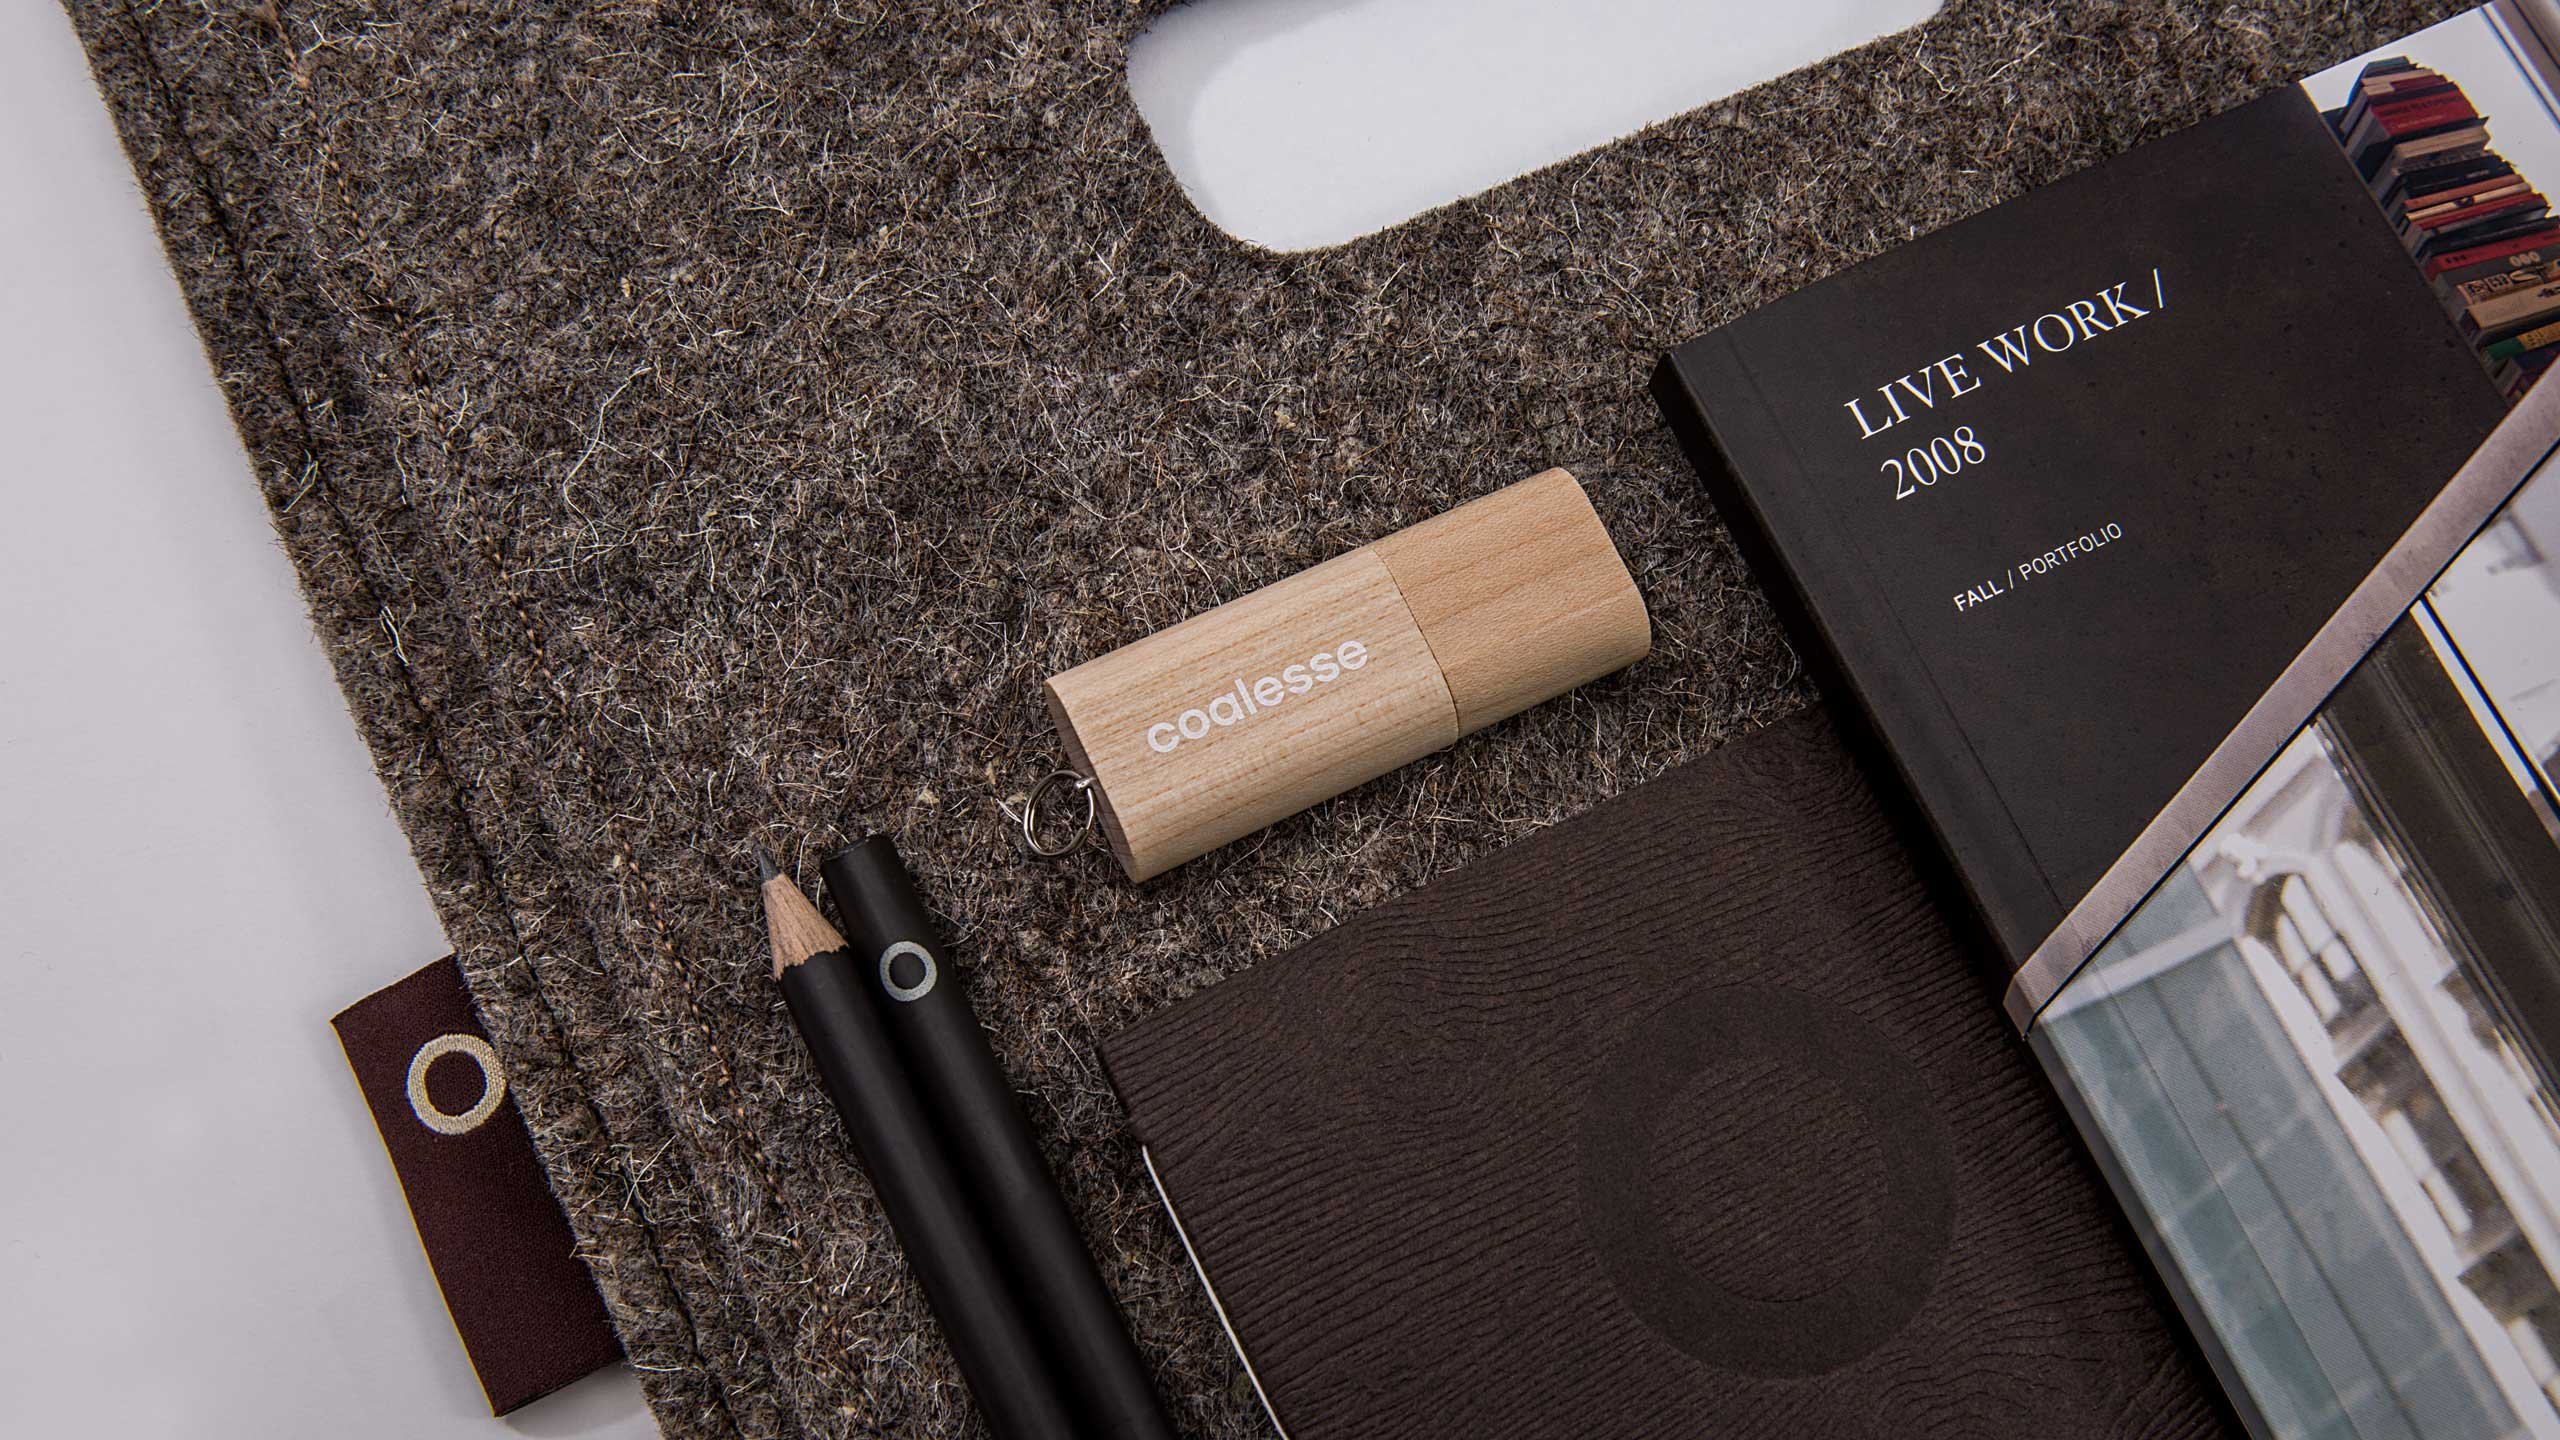 Coalesse Brand Launch Promotion Items with Felt Bag